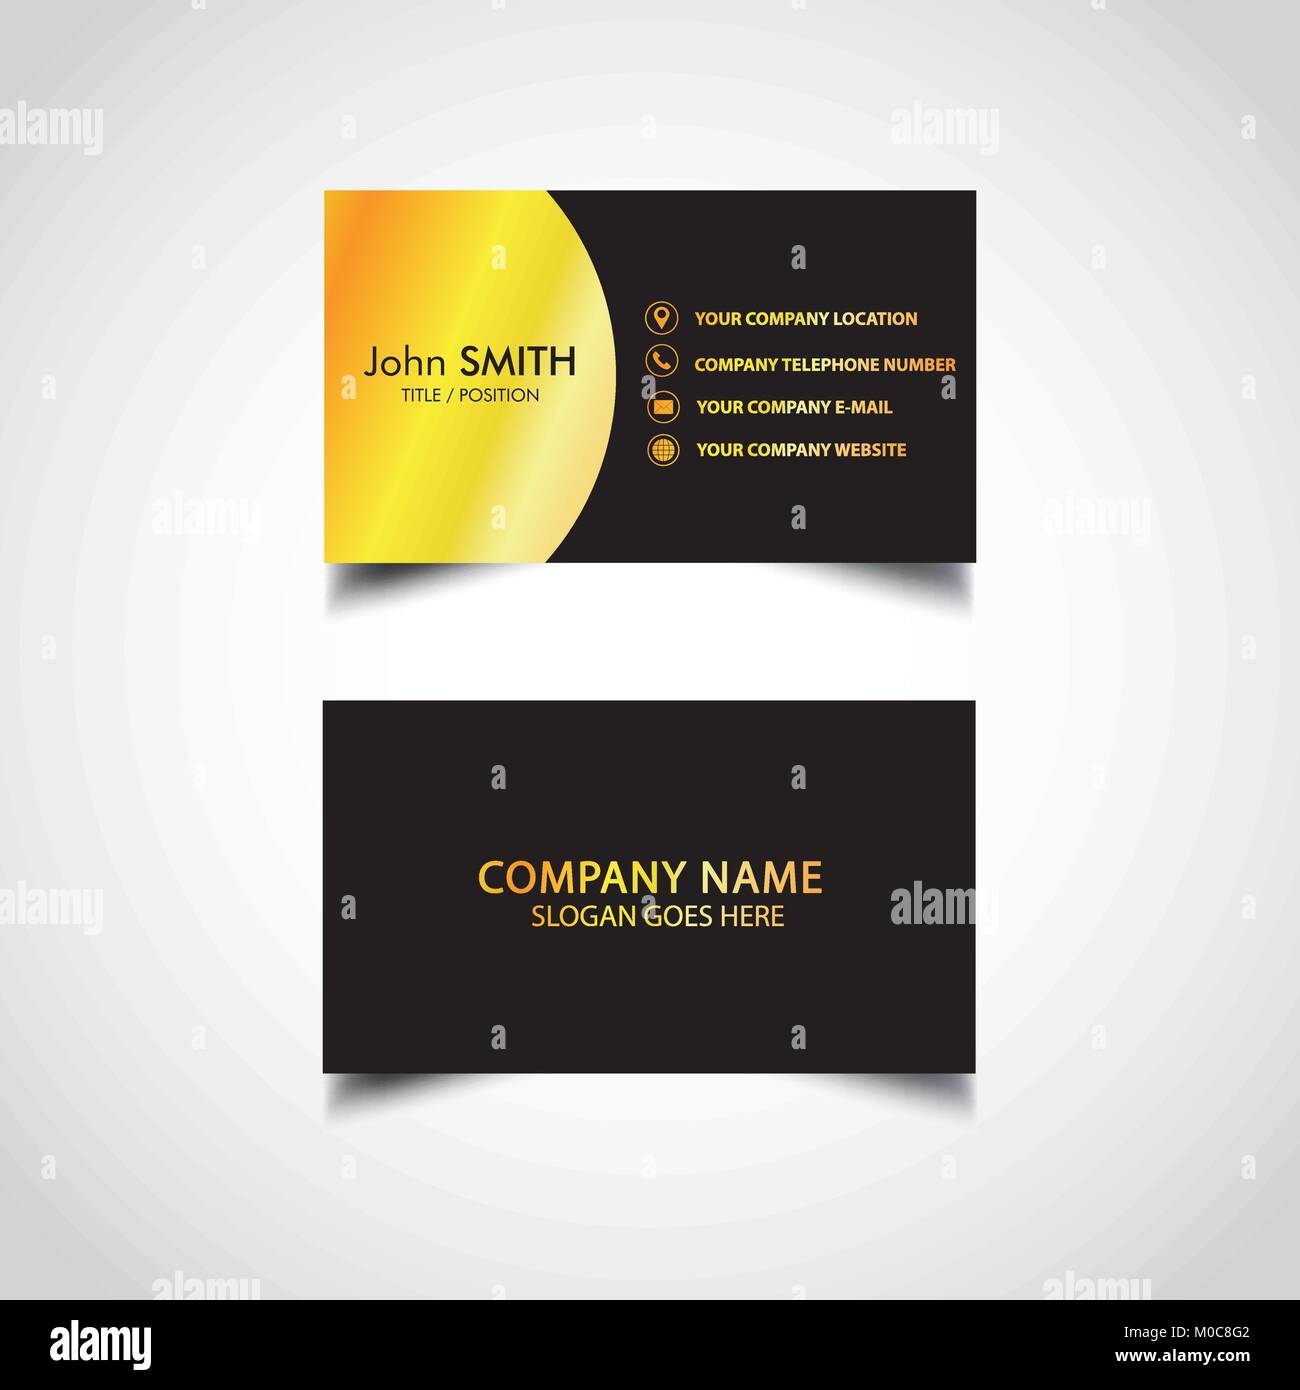 Golden business card template vector illustration eps file stock golden business card template vector illustration eps file flashek Images